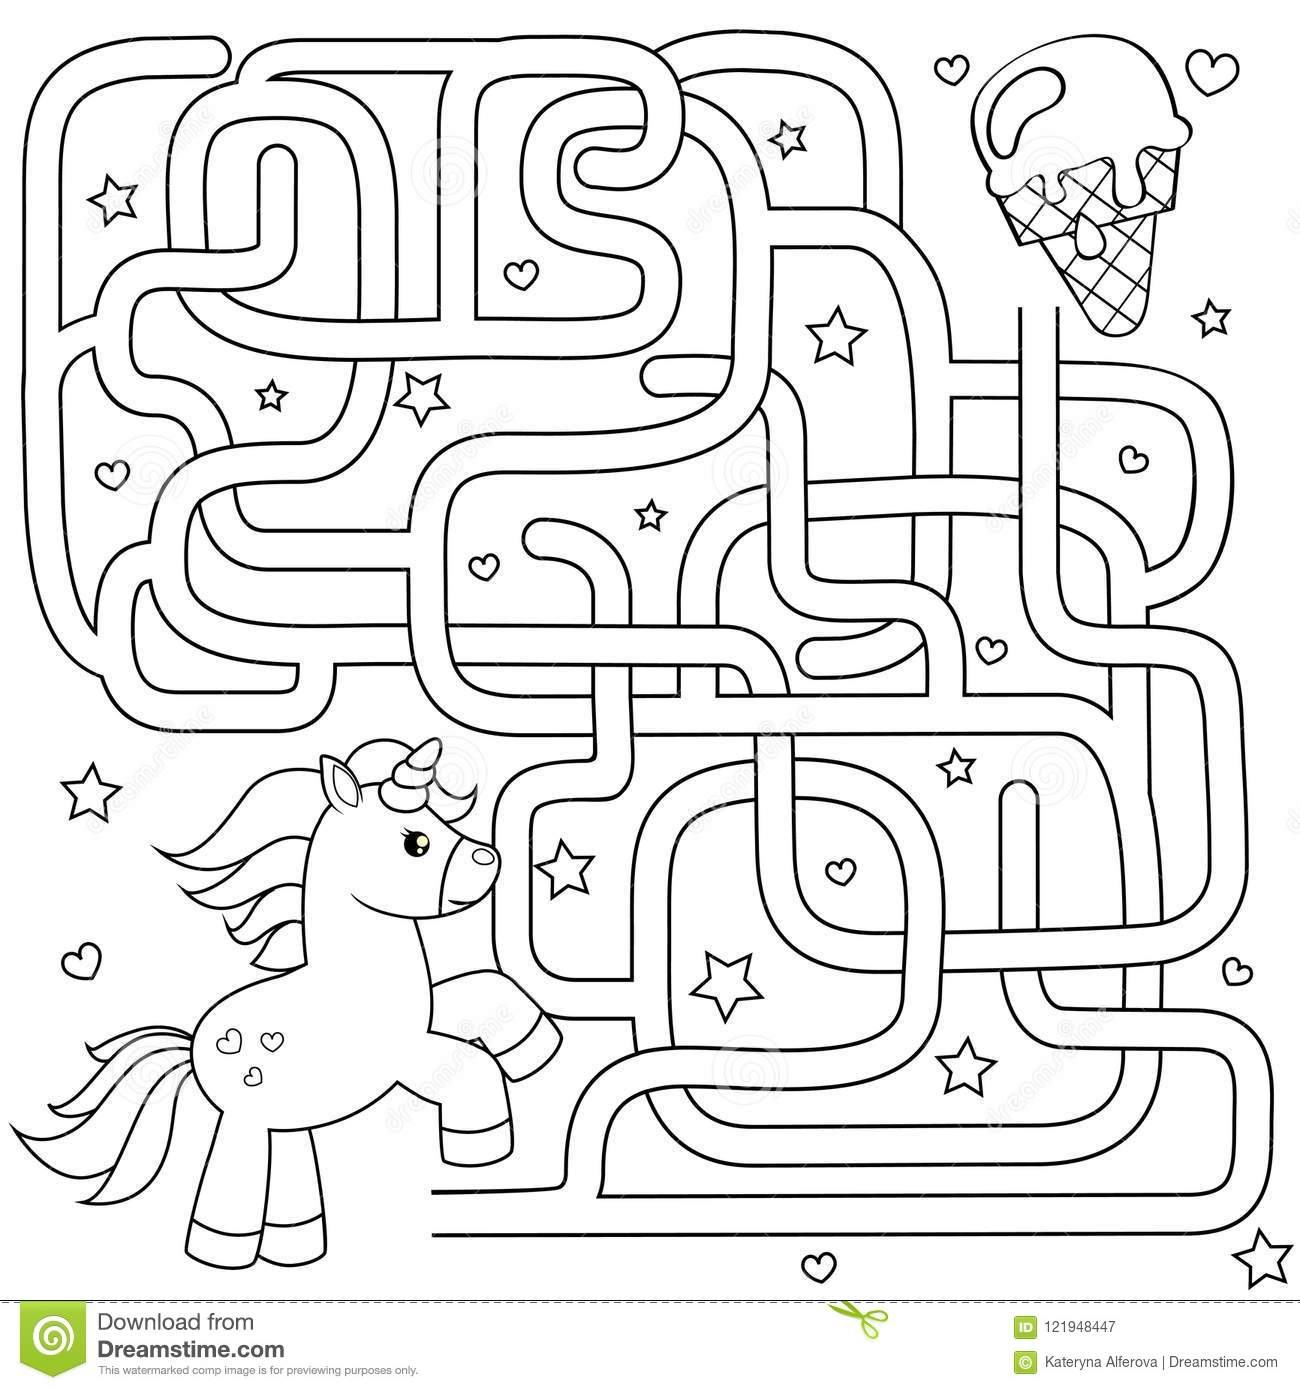 Help Unicorn Find Path To Ice Cream  Labyrinth  Maze Game